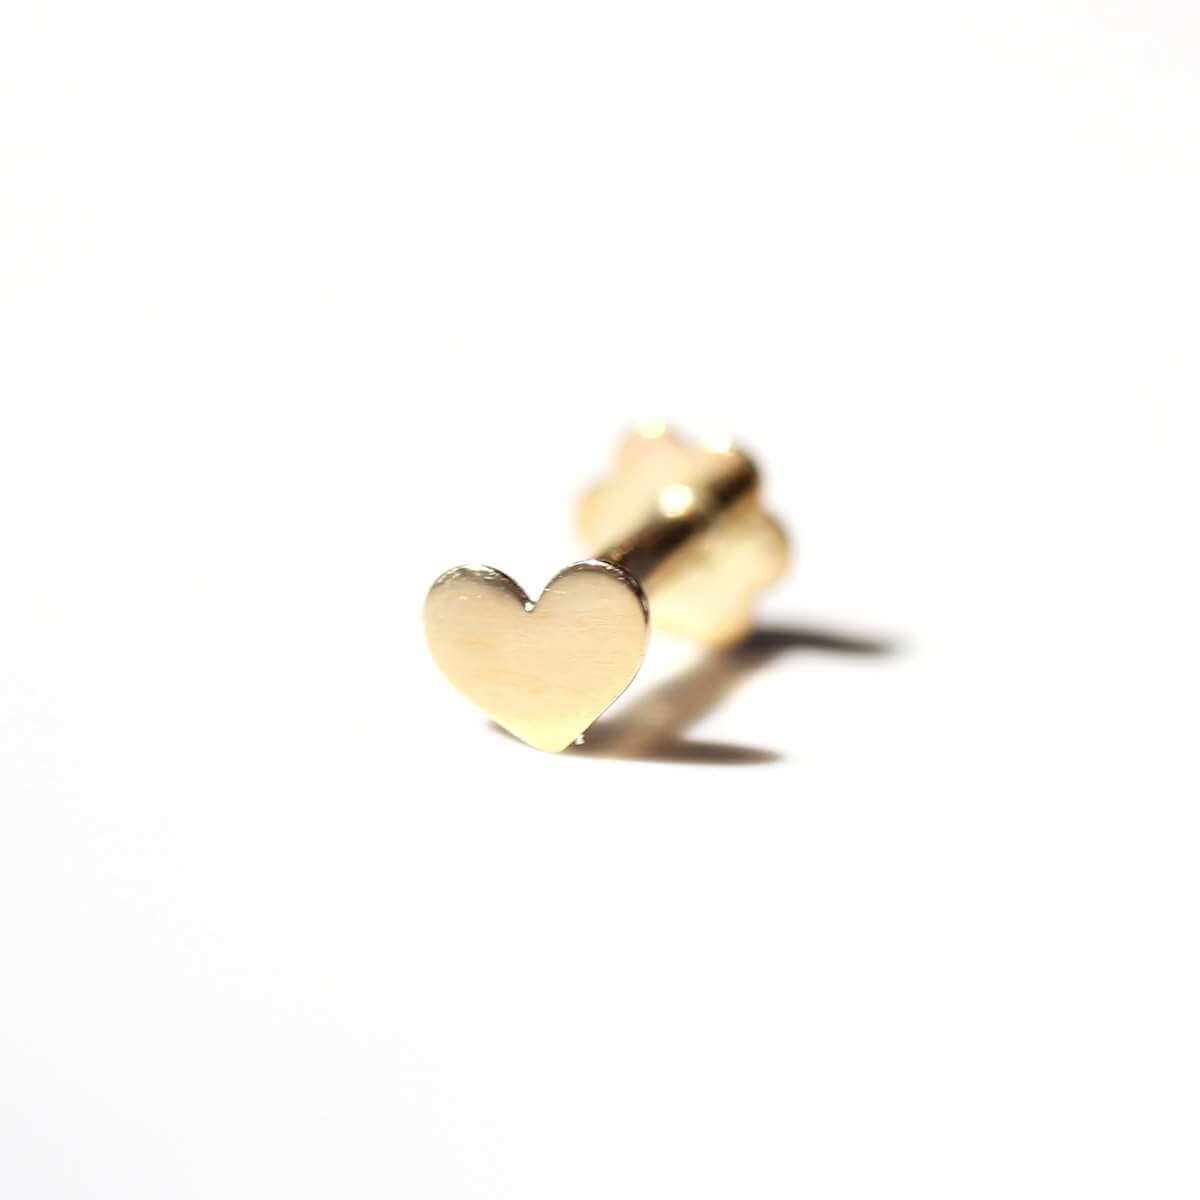 9ct Gold Heart Labret Cartilage Piercing